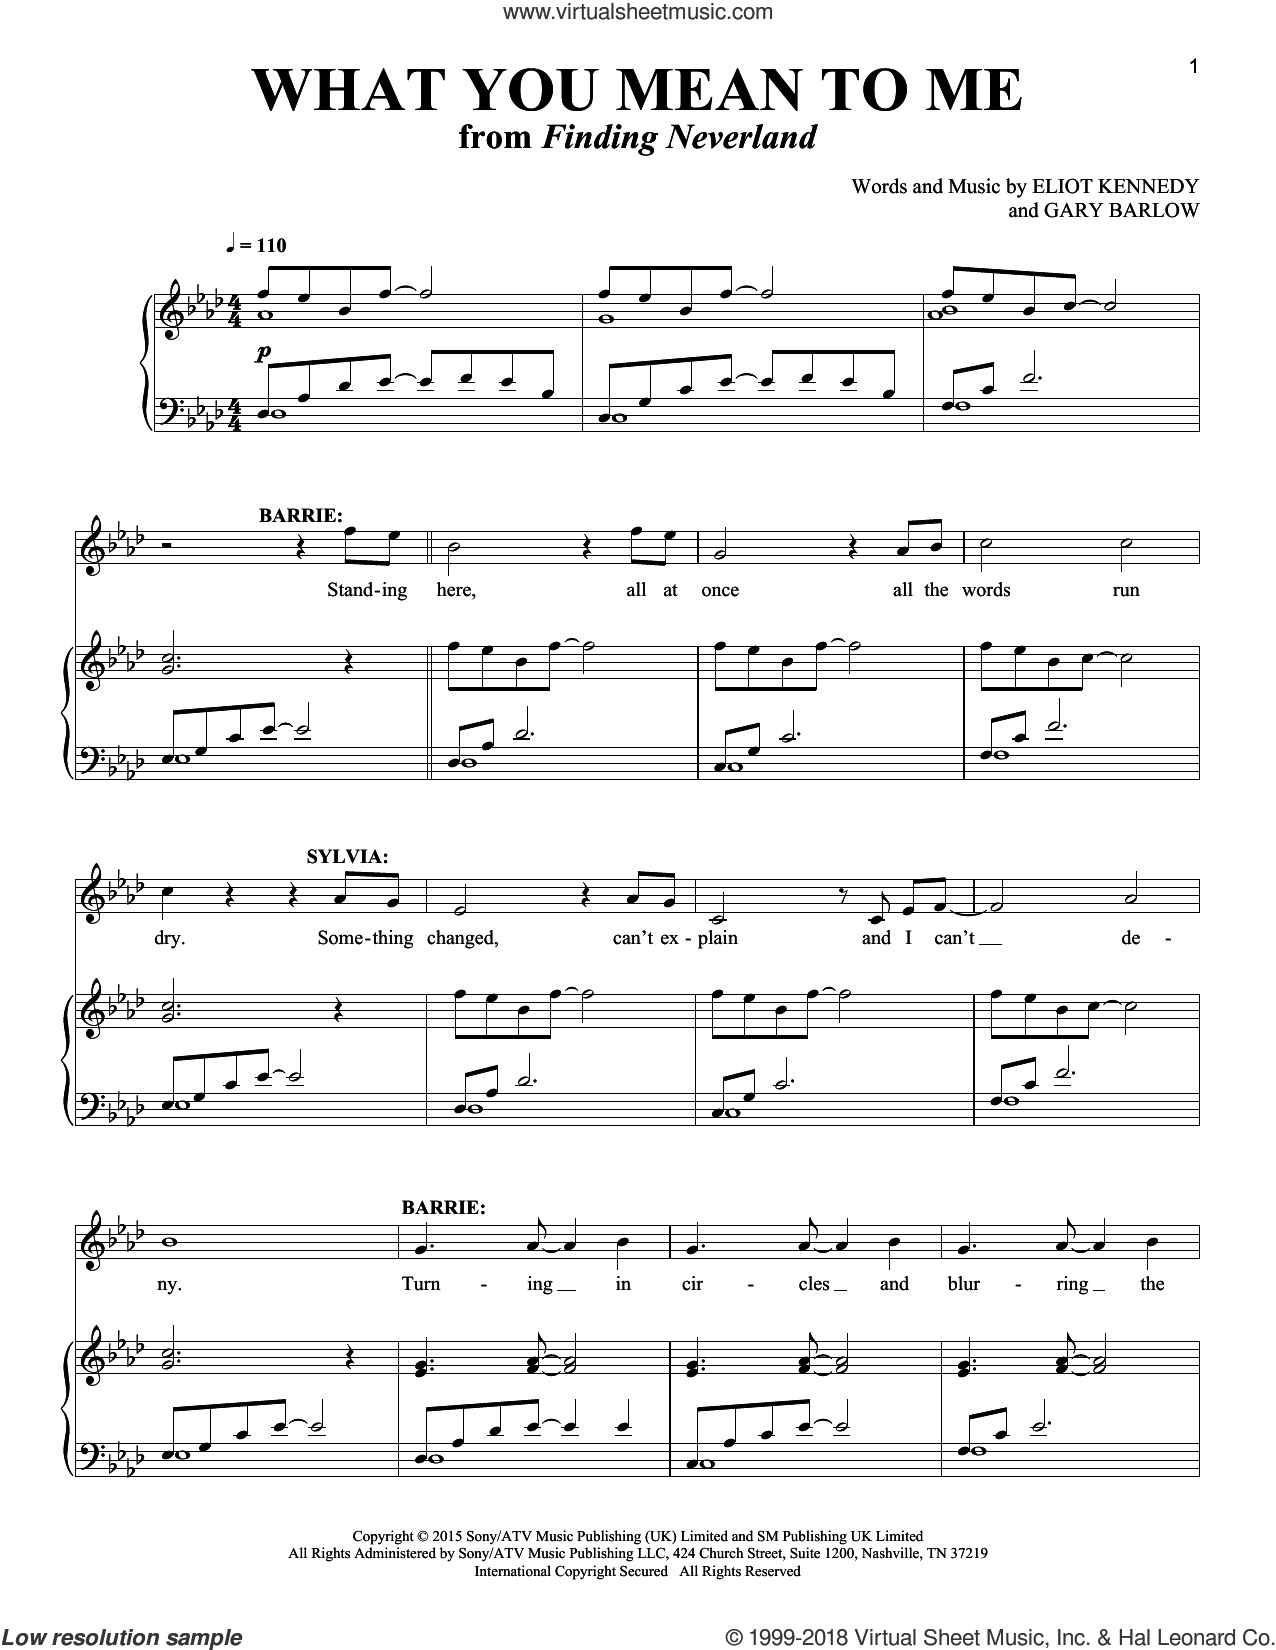 What You Mean To Me sheet music for two voices and piano by Gary Barlow, Richard Walters and Eliot Kennedy, intermediate skill level